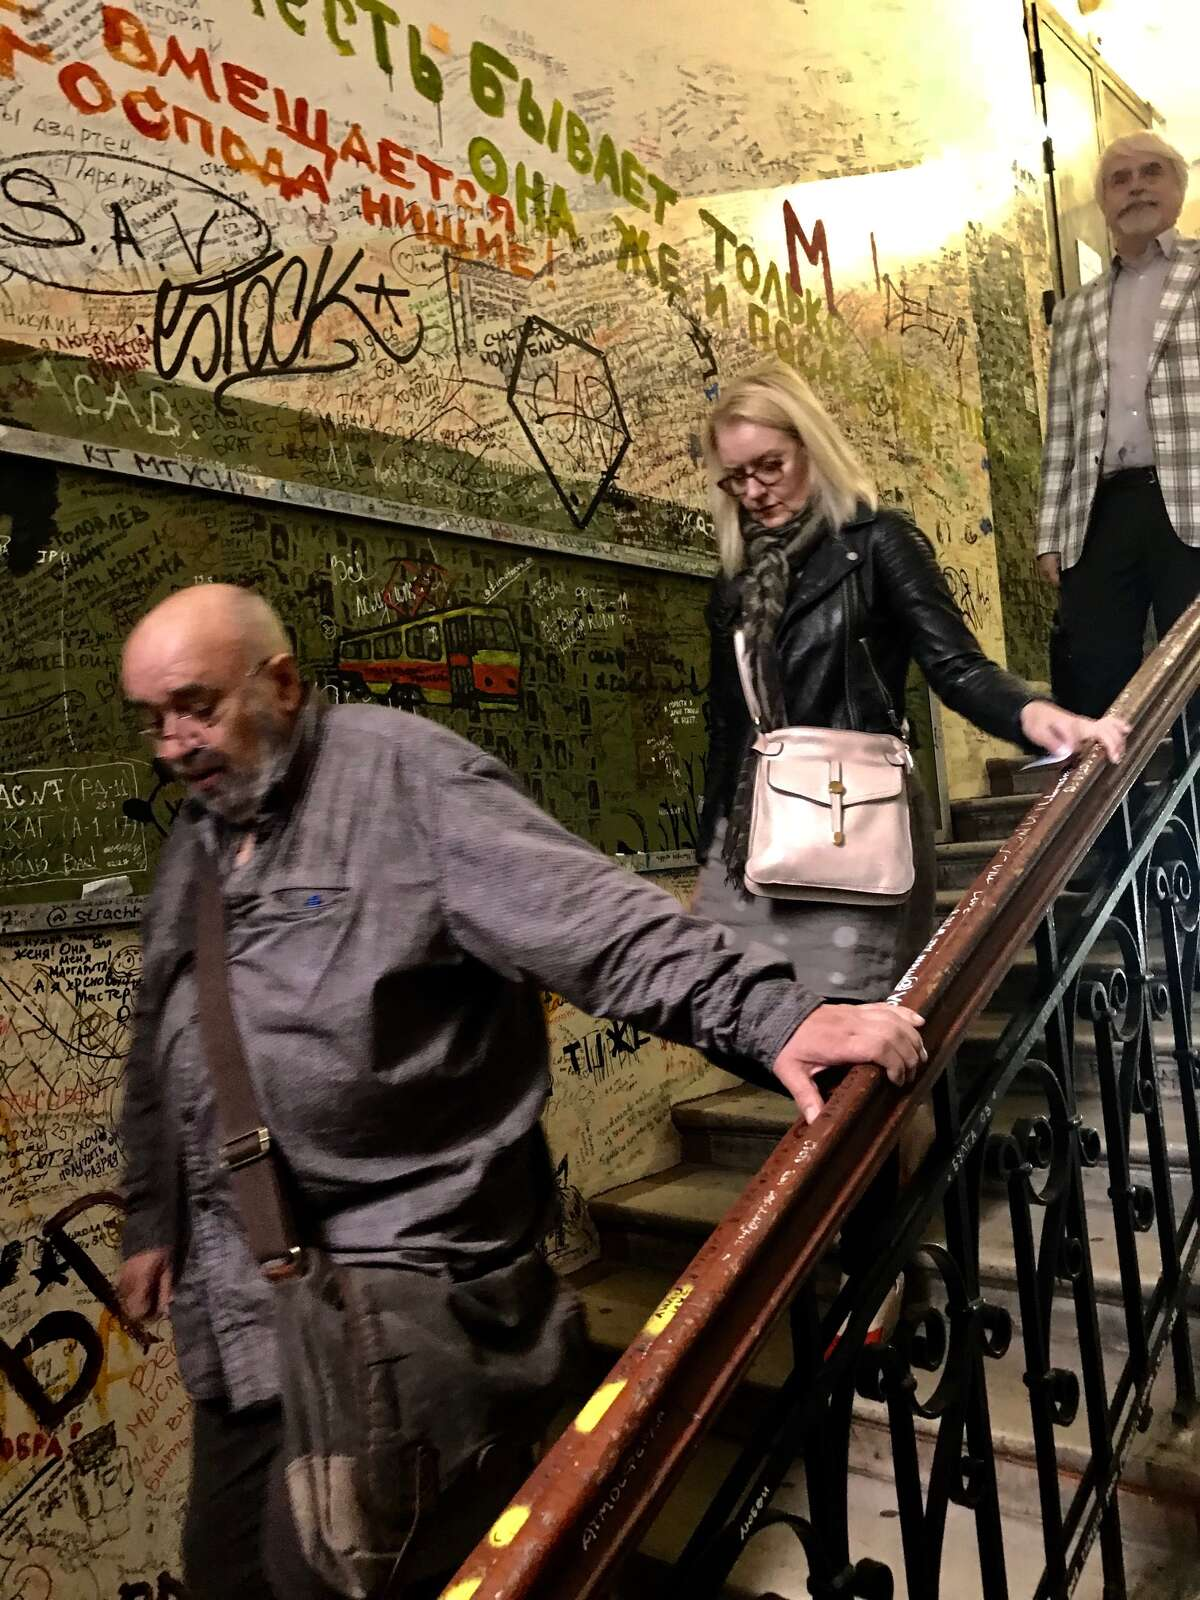 Yevgeny Popov, Mary Grondahl and Boris Evseev, pass graffiti-covered walls walking down from the fourth-floor apartment of Russian dissident writer Mikhail Bulgakov, which has become a shrine to free speech in Moscow. (Paul Grondahl / Times Union)